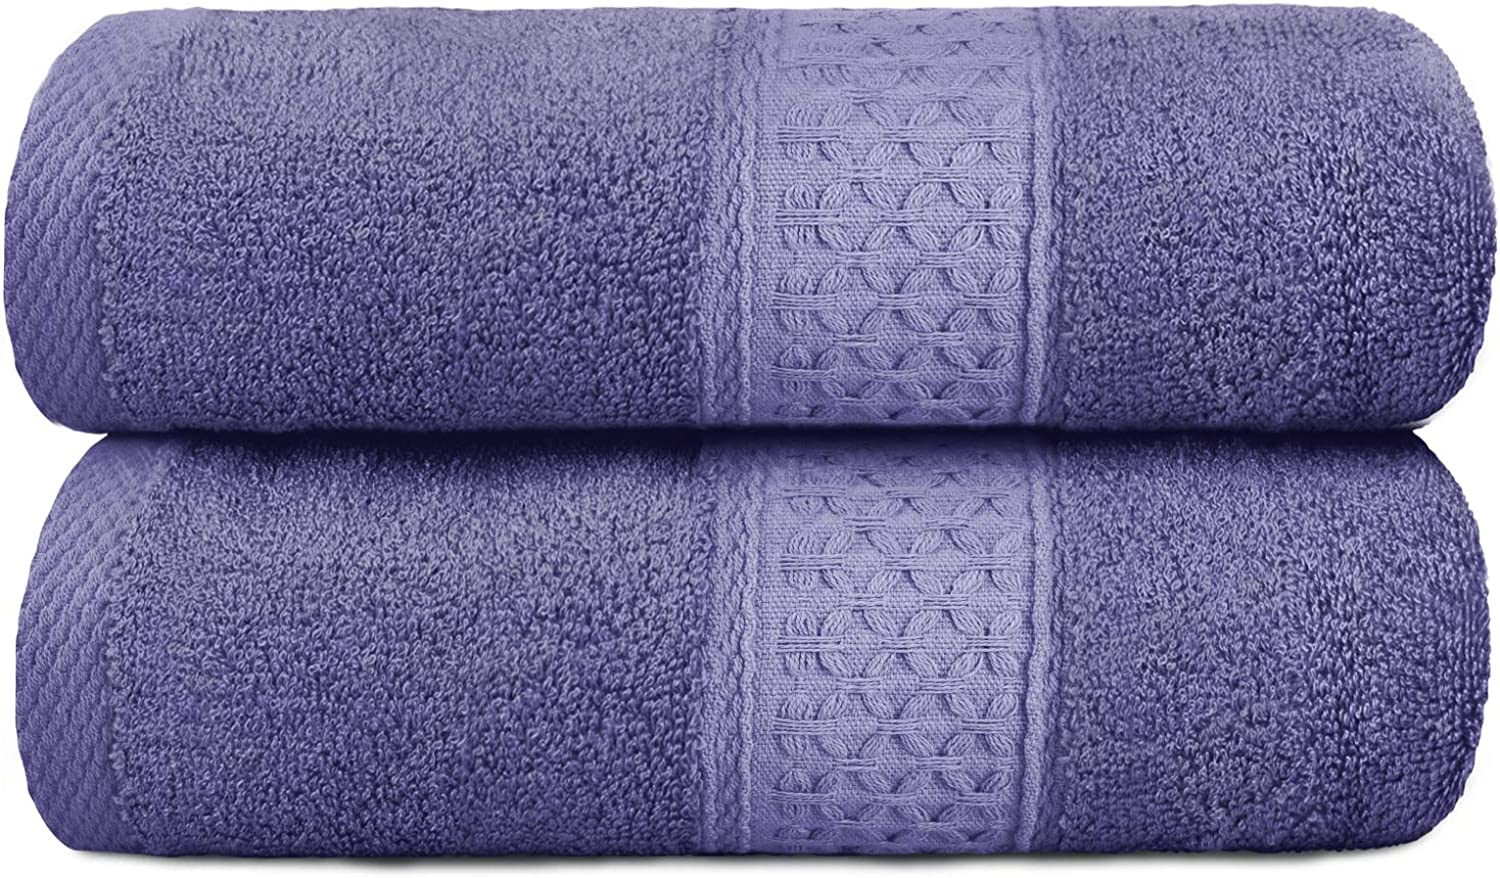 YOOFOSS Bath Towels 100% Organic Cotton Bath Towels Set 28x55 in Large Soft, Plush, Absorbent Towel for Bathroom - Purple: Kitchen & Dining